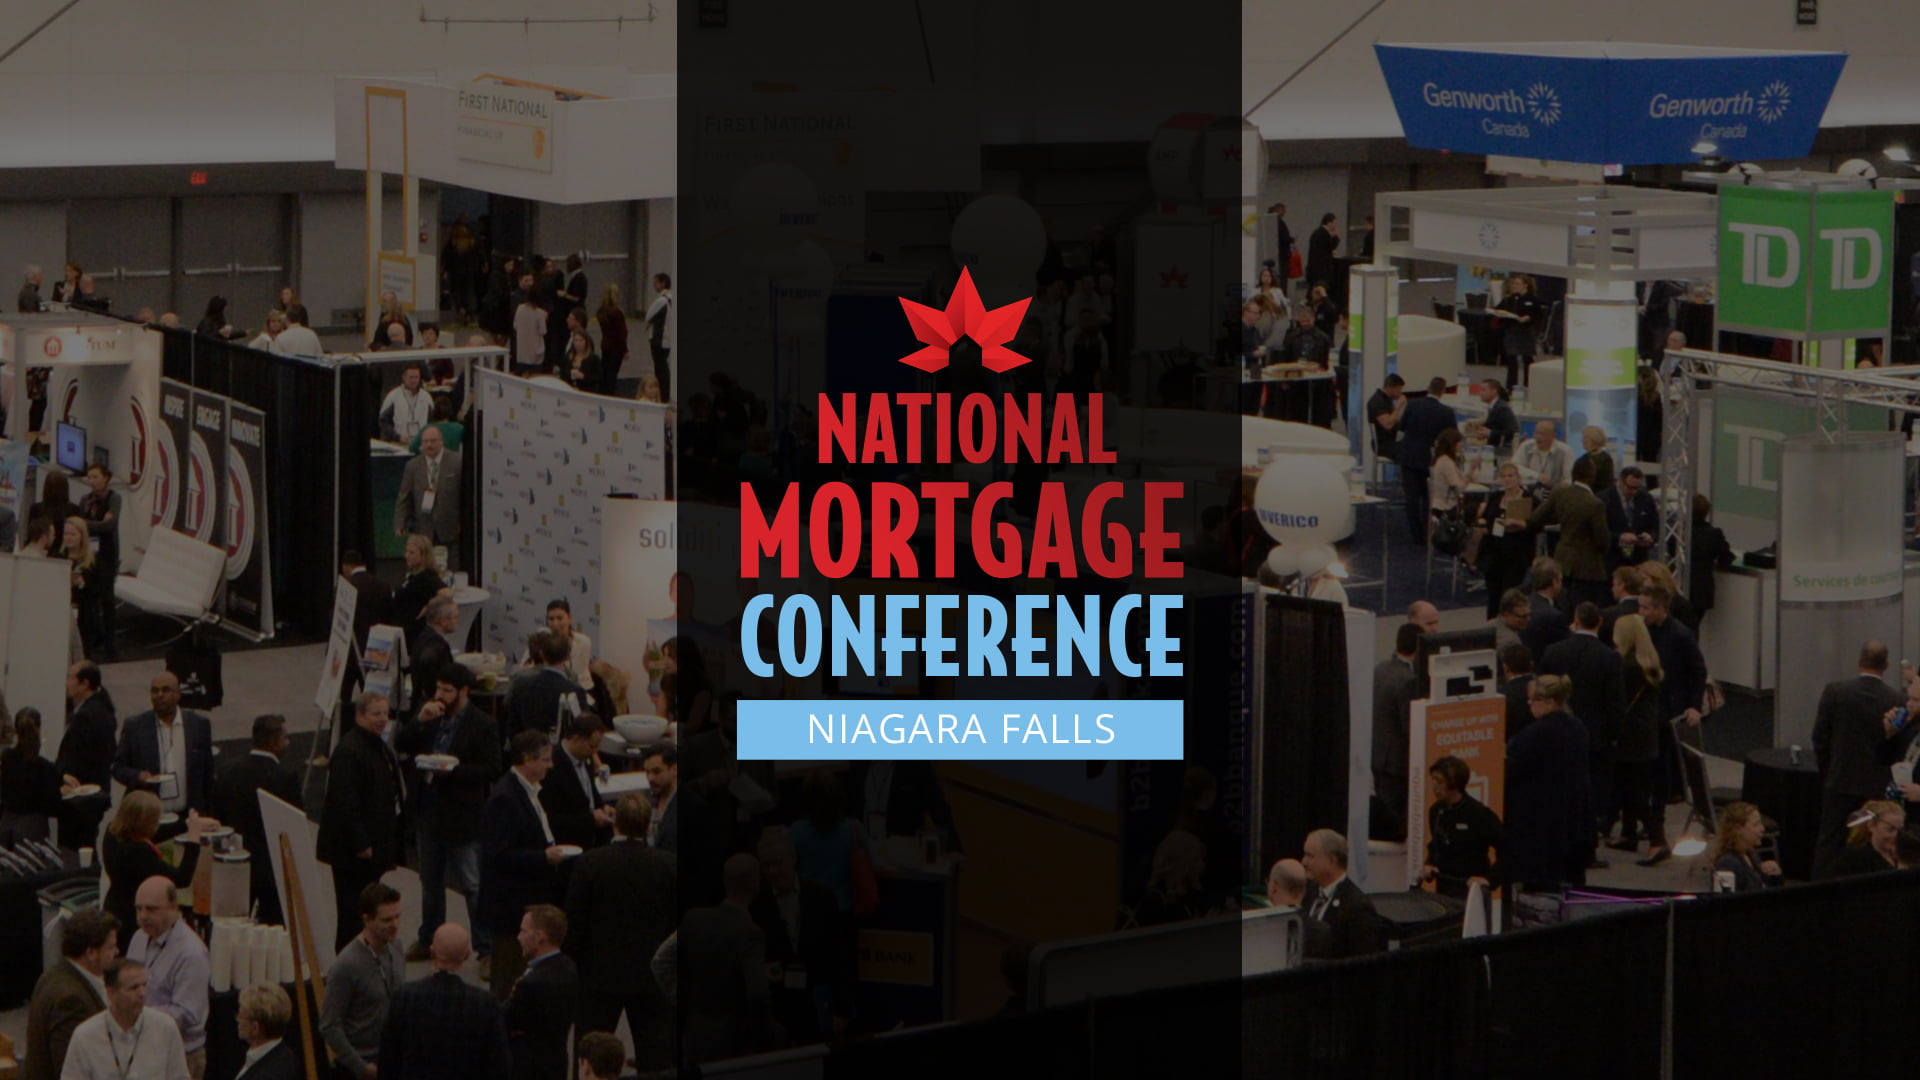 National Mortgage Conference